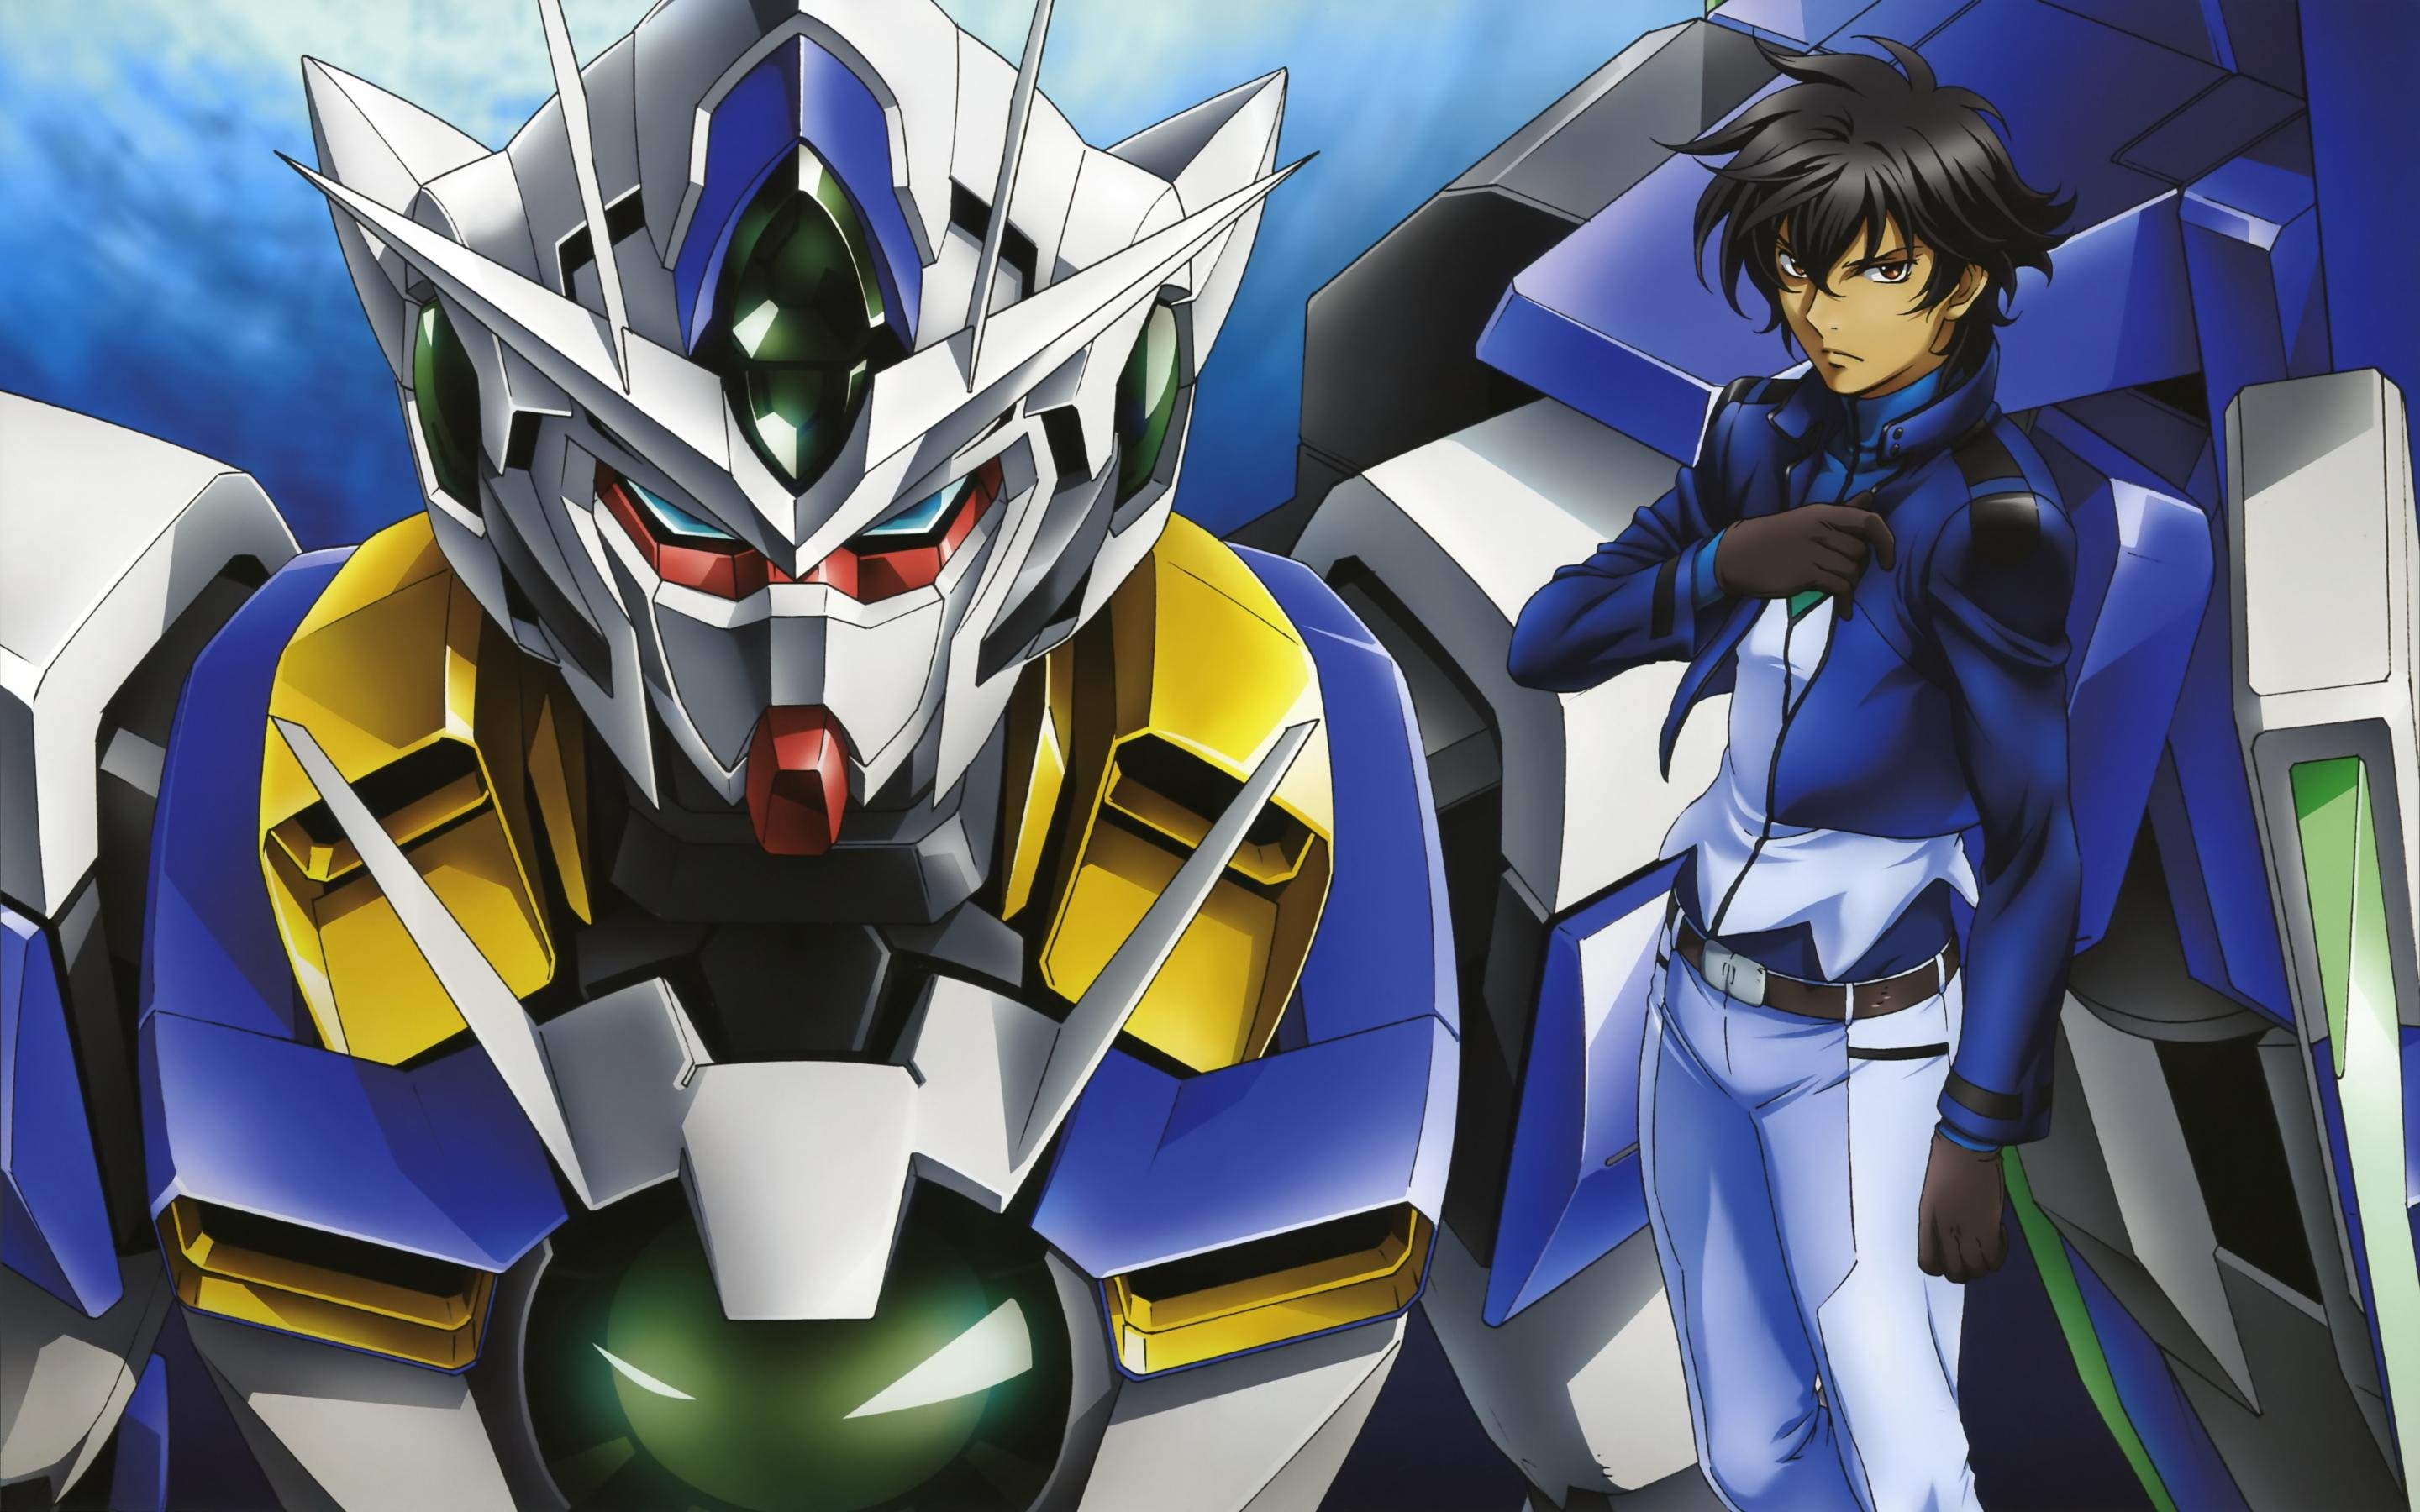 High resolution Mobile Suit Gundam 00 hd 2880x1800 background ID:83273 for desktop